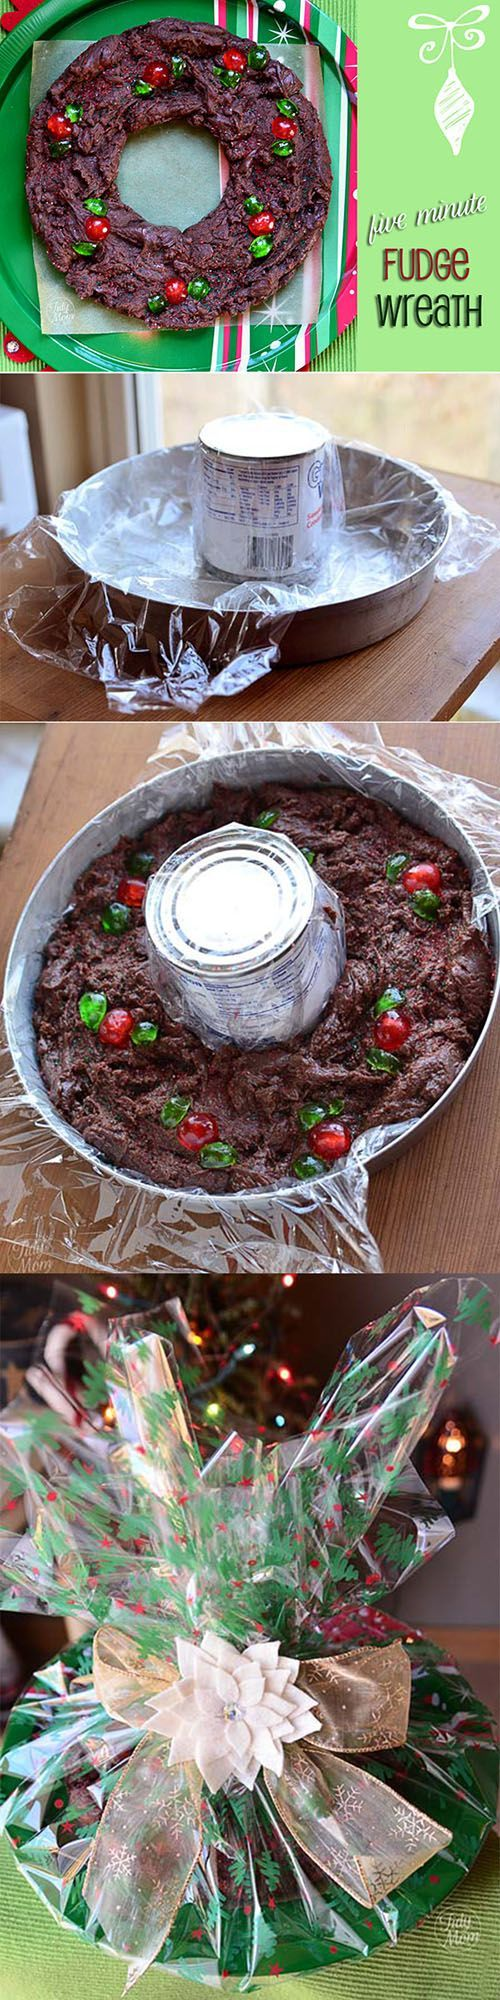 5 Minute Fudge Wreath - Don't be surprised if you make a batch of this fudge and discover you have way more friends than you used to!  Be sure to make a batch for yourself! recipe at http://TidyMom.net